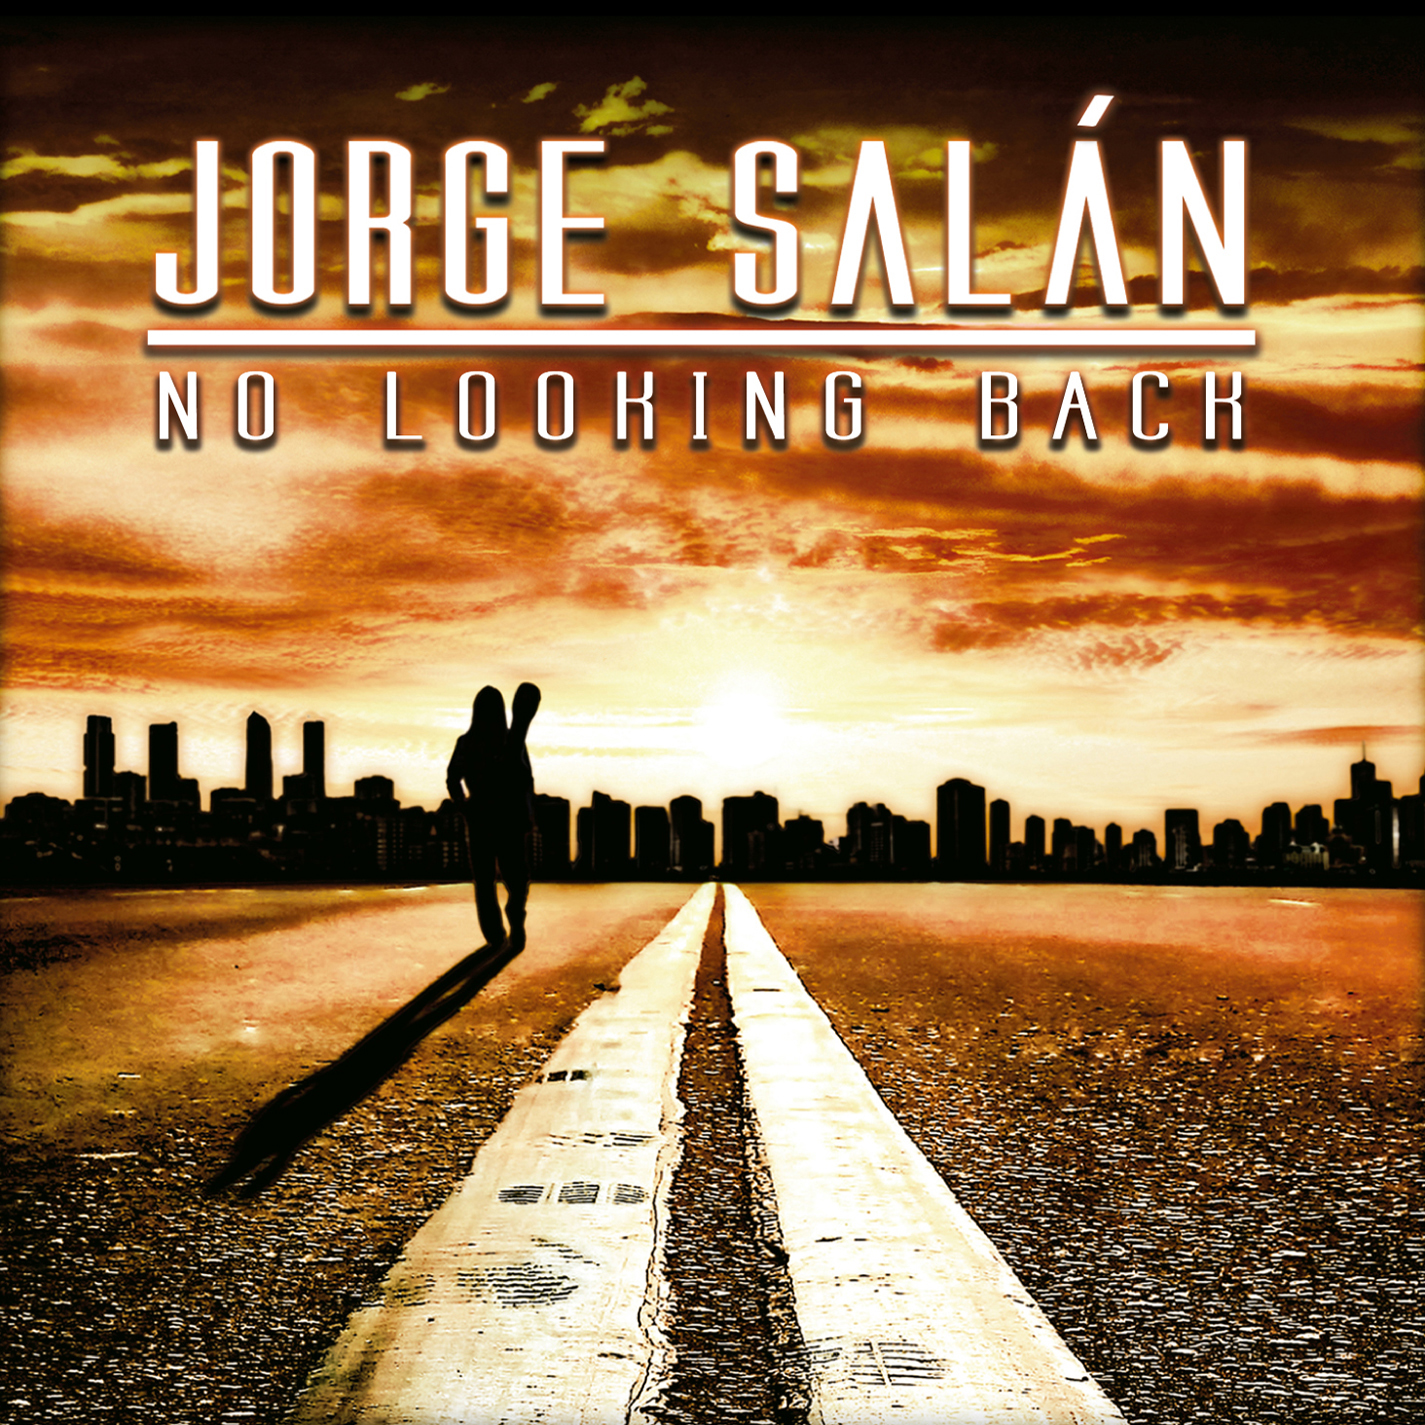 Jorge Salán: No Looking Back